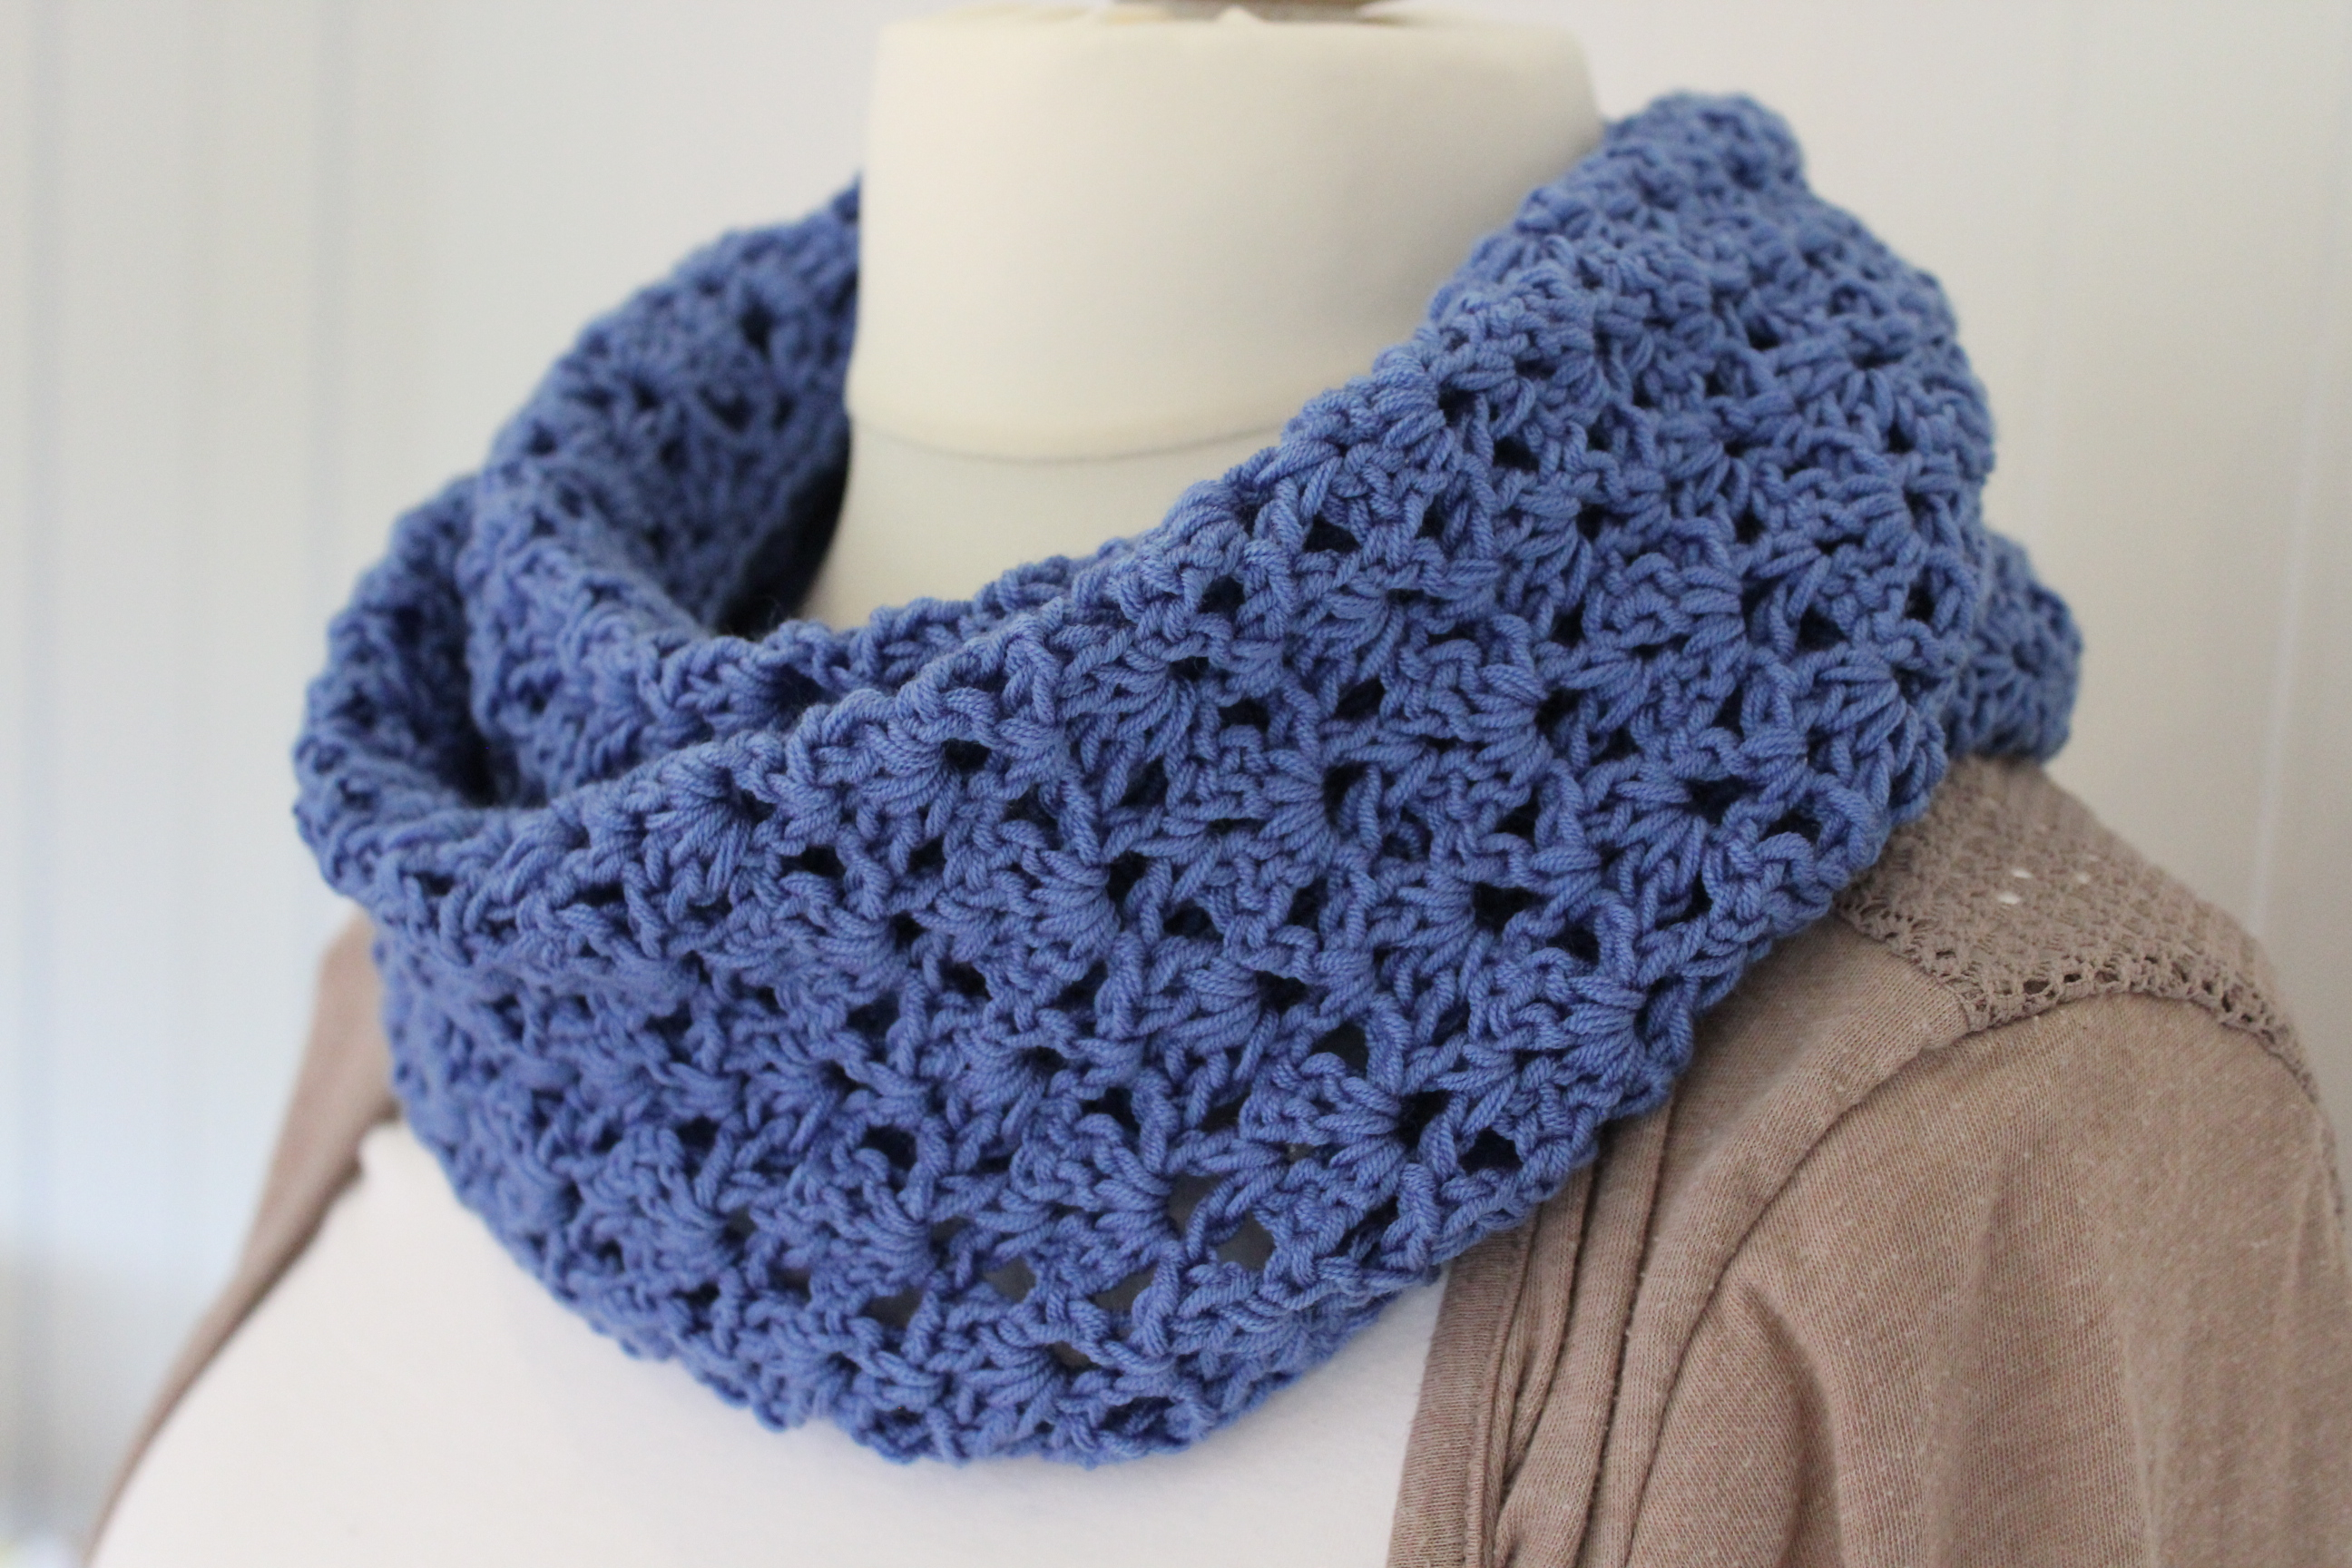 Loop Scarf Knitting Pattern Crochet Pattern For An Infinity Scarf In A Jeans Look